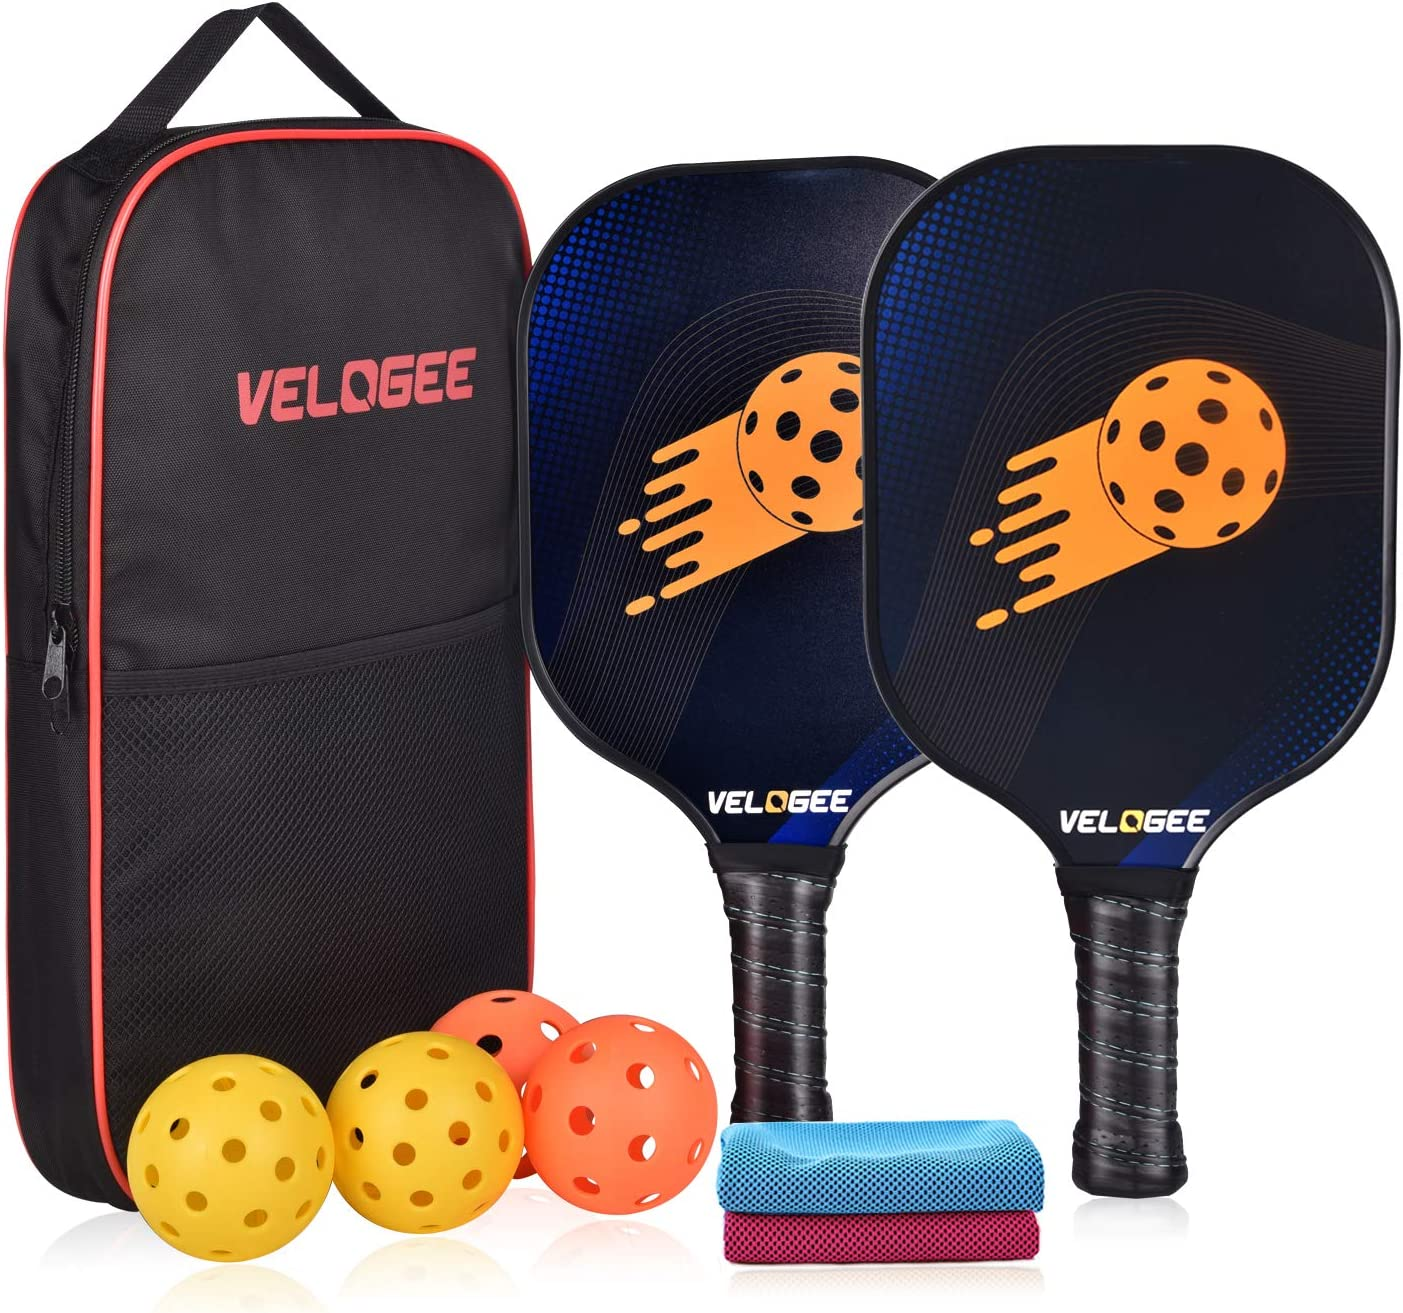 Velogee Graphite Pickleball Paddle Set of 2 Lightweight Rackets Honeycomb Composite Core, Ultra Cushion Comfort Grip Including Easy Carrying Portable Bag, 4 Balls & 2 Sports Cooling Towels